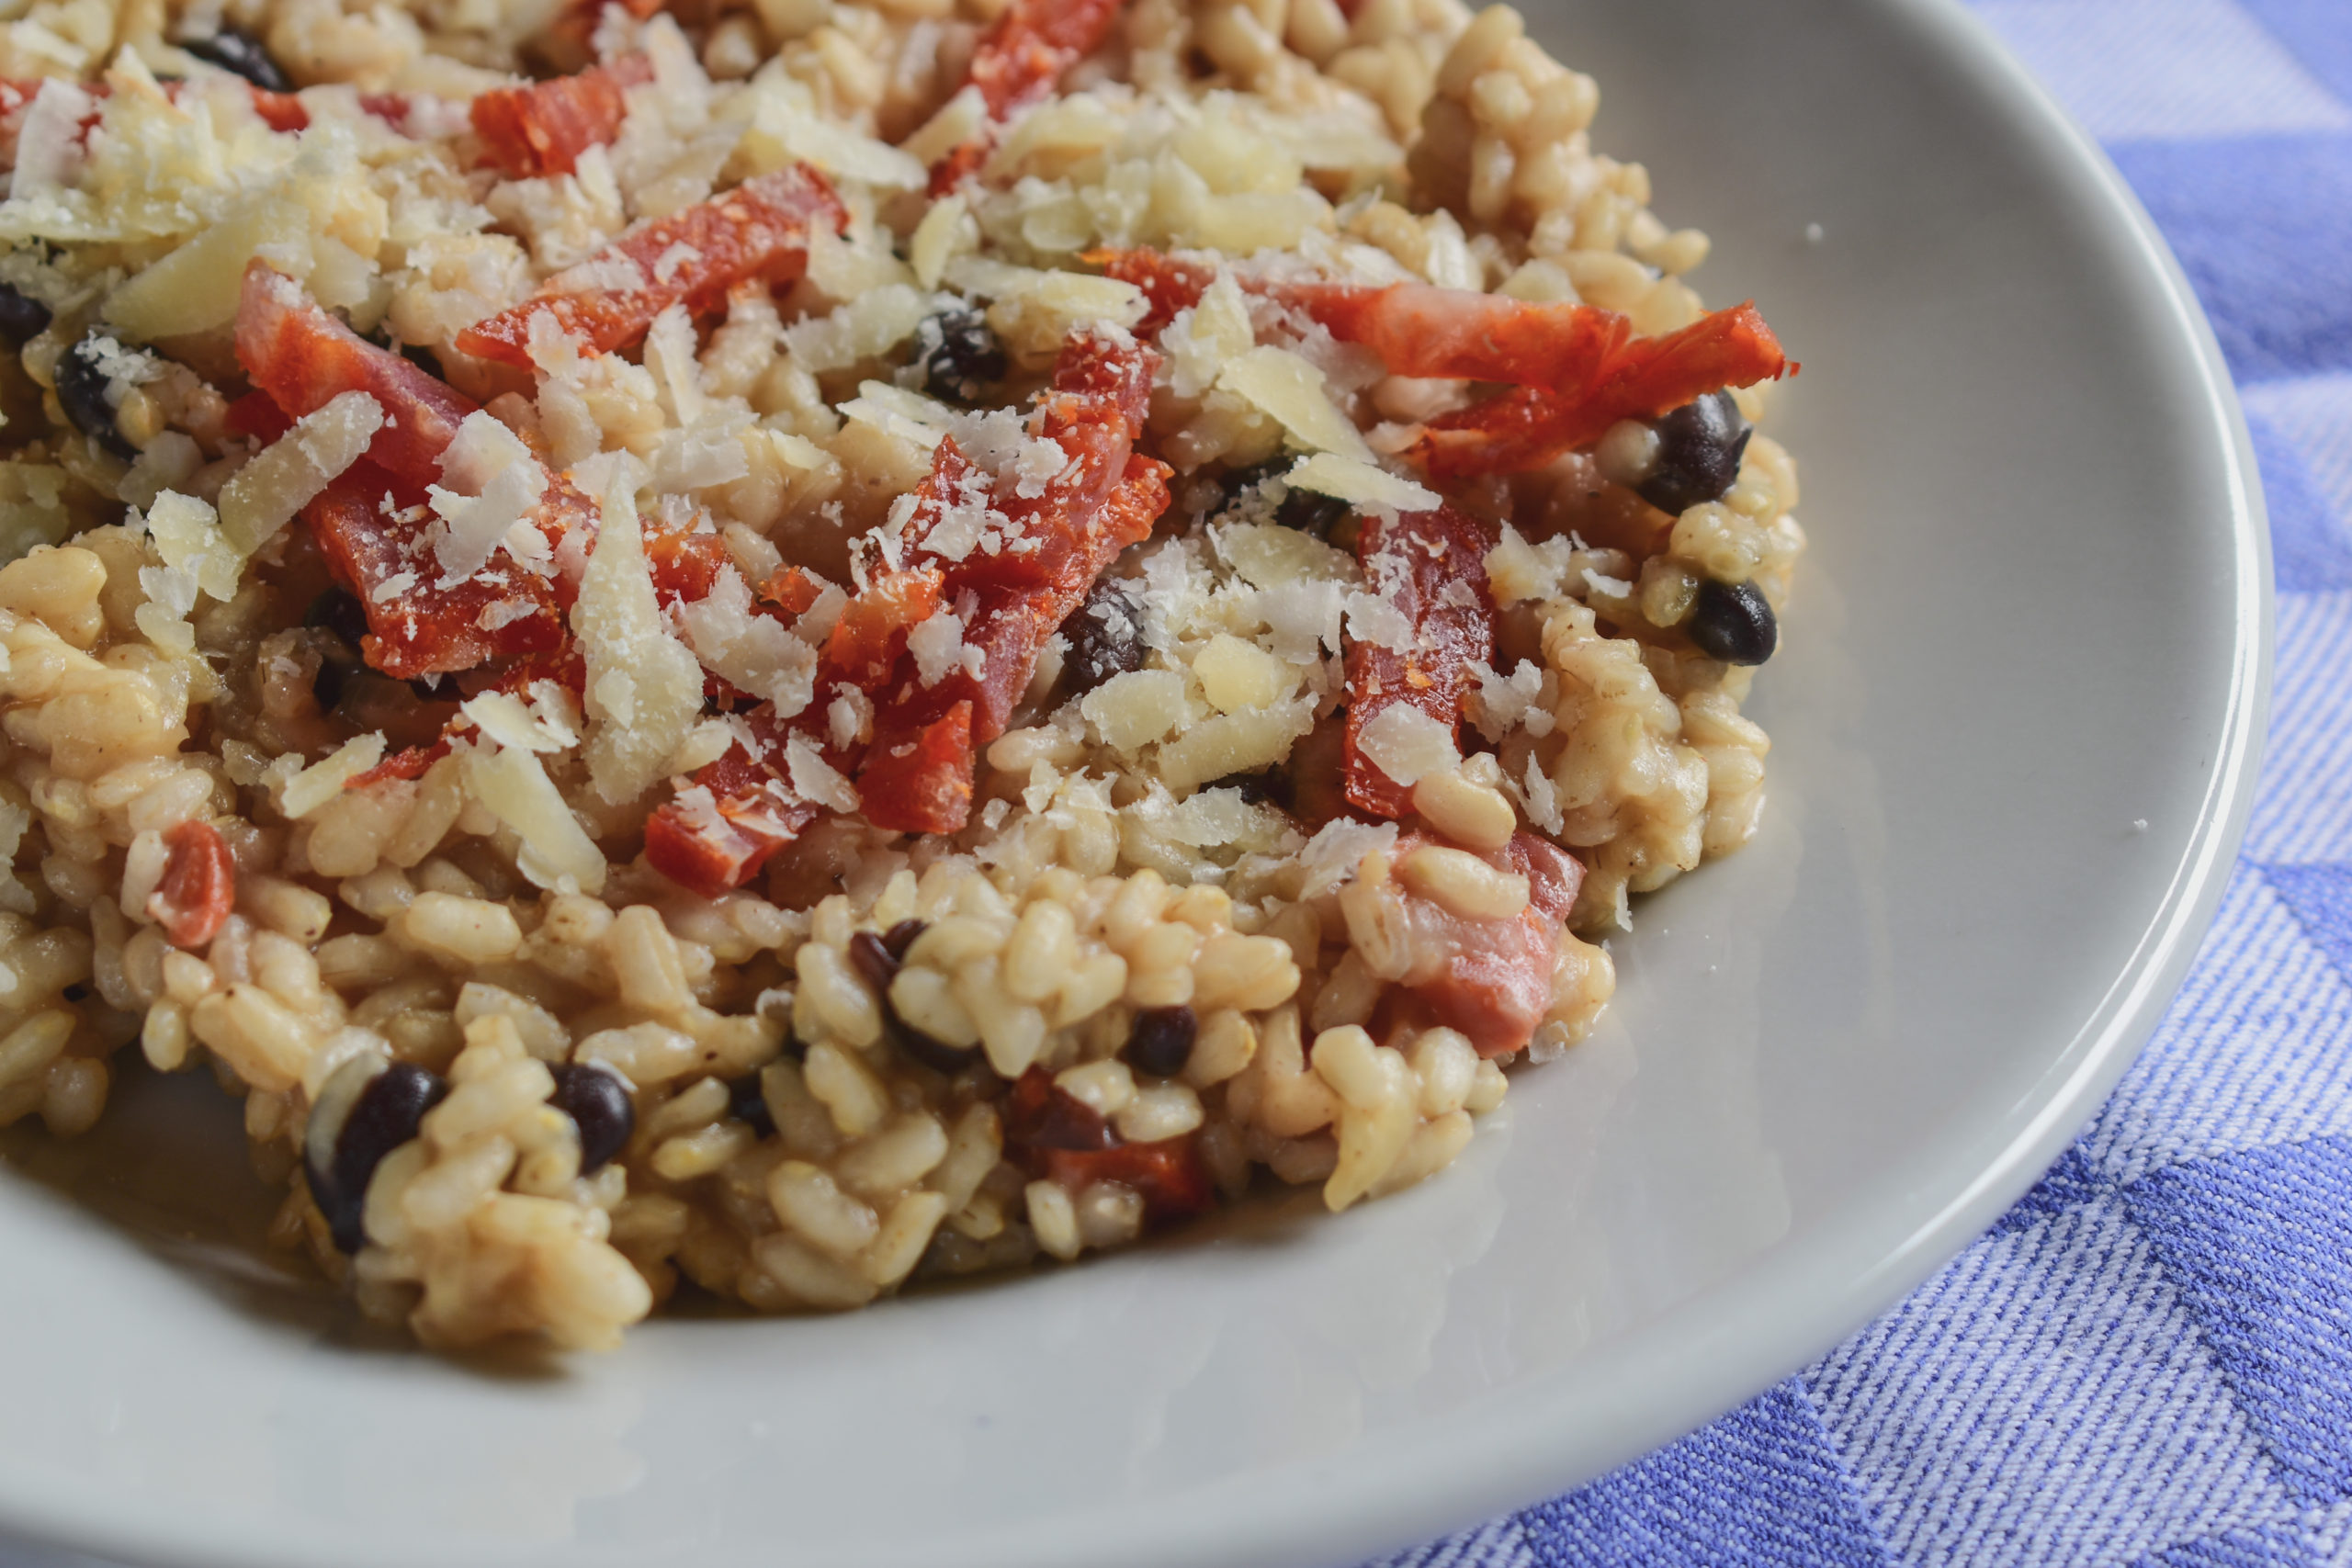 Beer risotto with Napoli sausage and beans